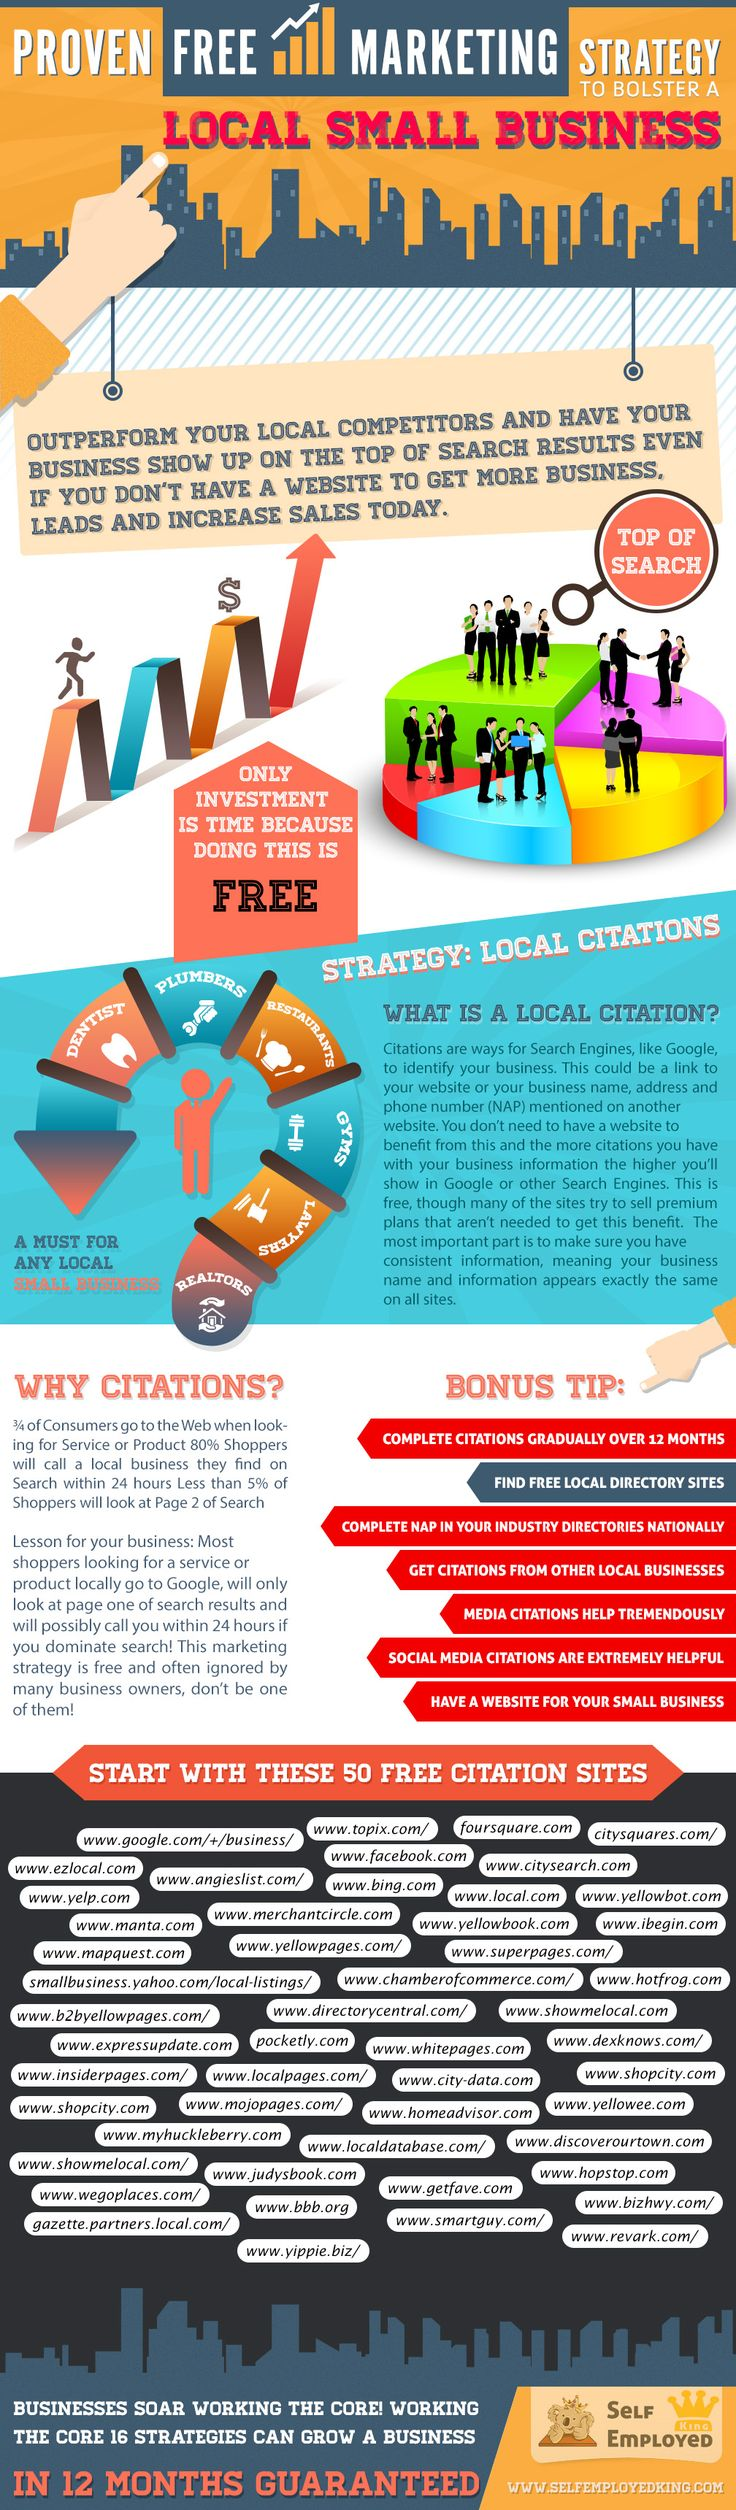 This is  a must Small Business Marketing Strategy that should be in Every Small businesses marketing plan. This is proven to drive results & business and it is FREE. You don't need a website and this is AWESOME for service companies, restaurants, retail stores and small business professionals. Do 1 a day for 10 minutes and in 50 days WOW. Top 50 Citation sites to start with